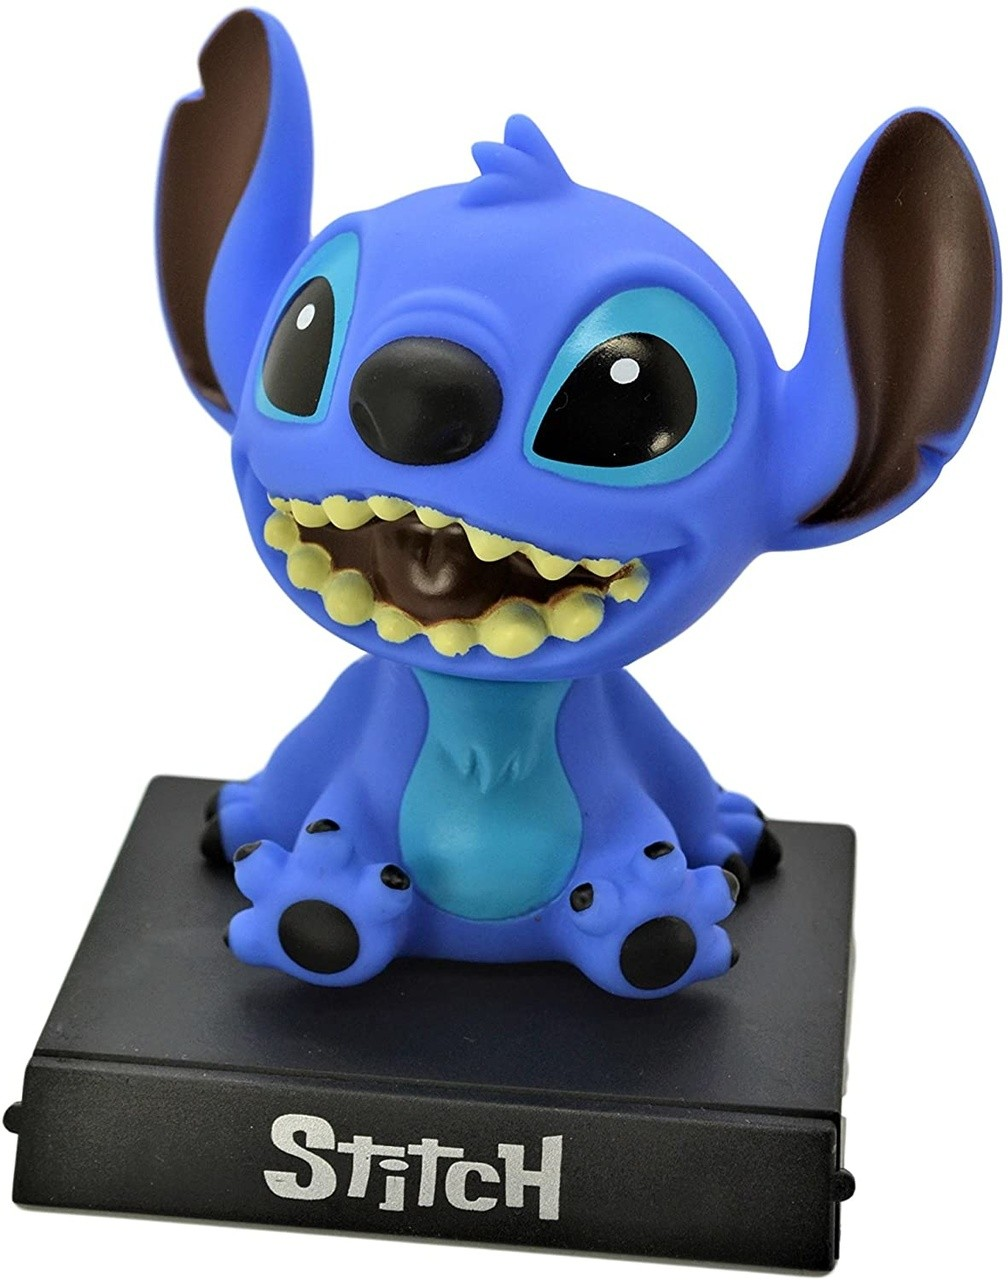 Estátua Stitch Bobble Head : Lilo & Stitch - Disney (12cm)